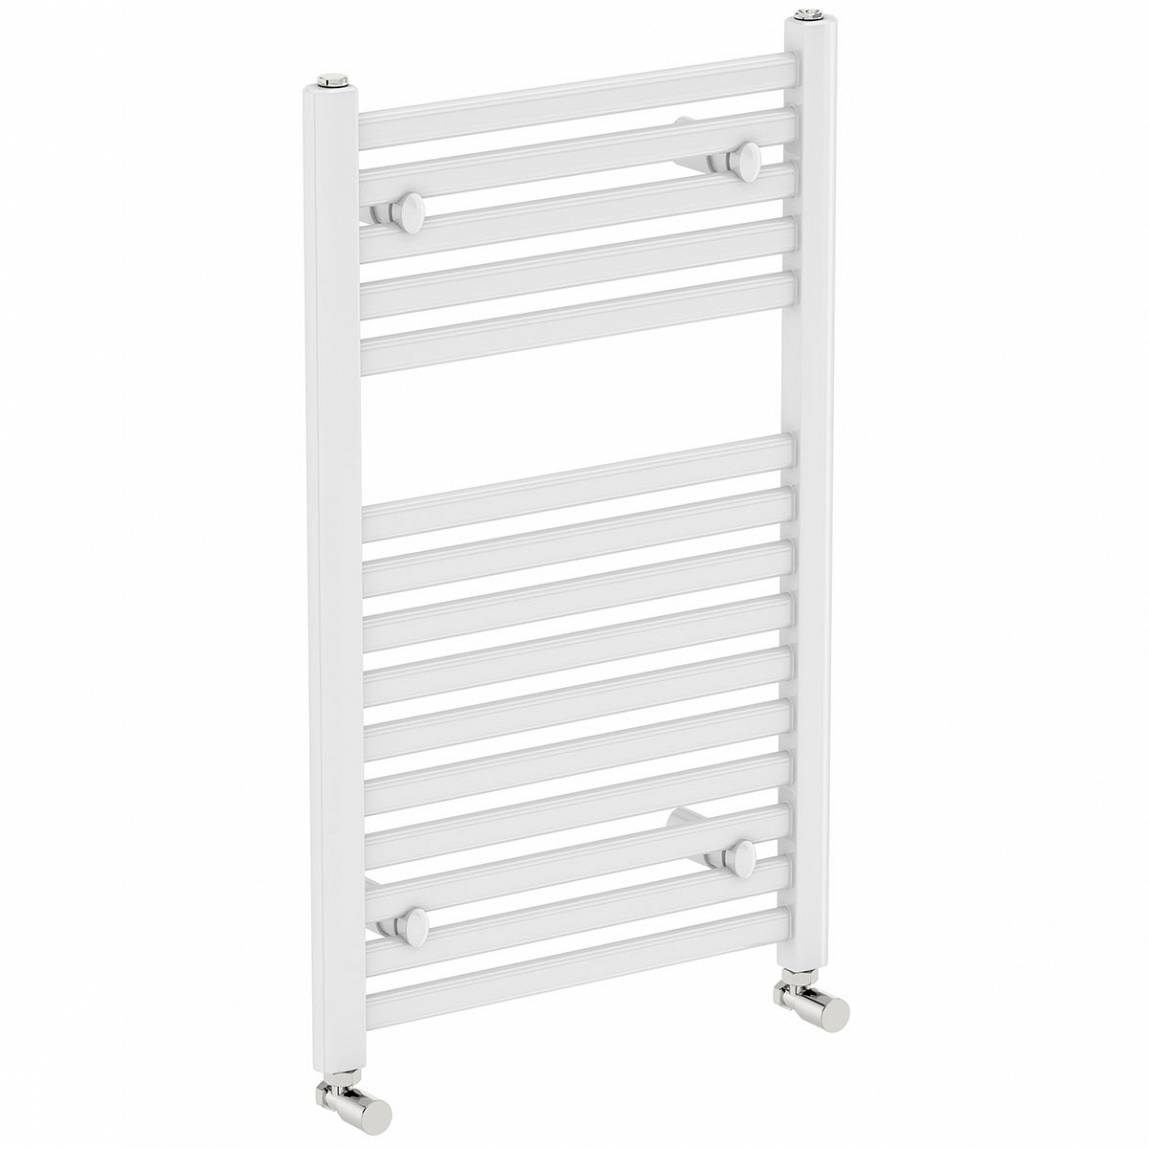 Image of White Heated Towel Rail 800 x 500